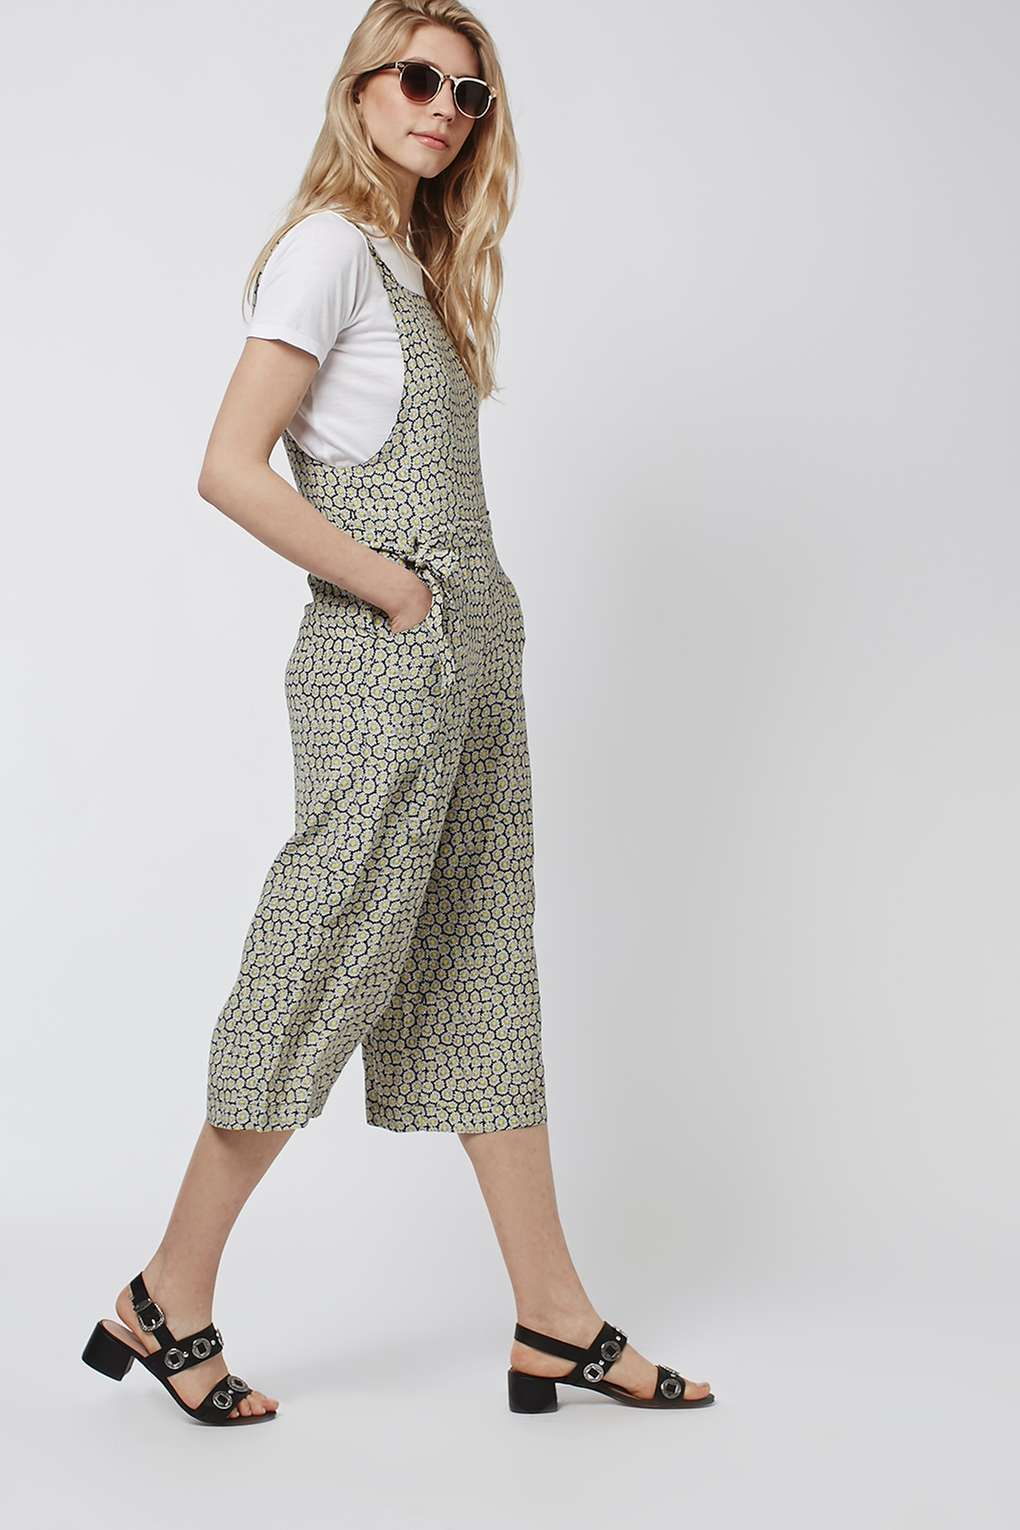 bc38f8dcc22 Daisy Pinafore Jumpsuit - Topshop | Wear | Jumpsuit, How to wear ...